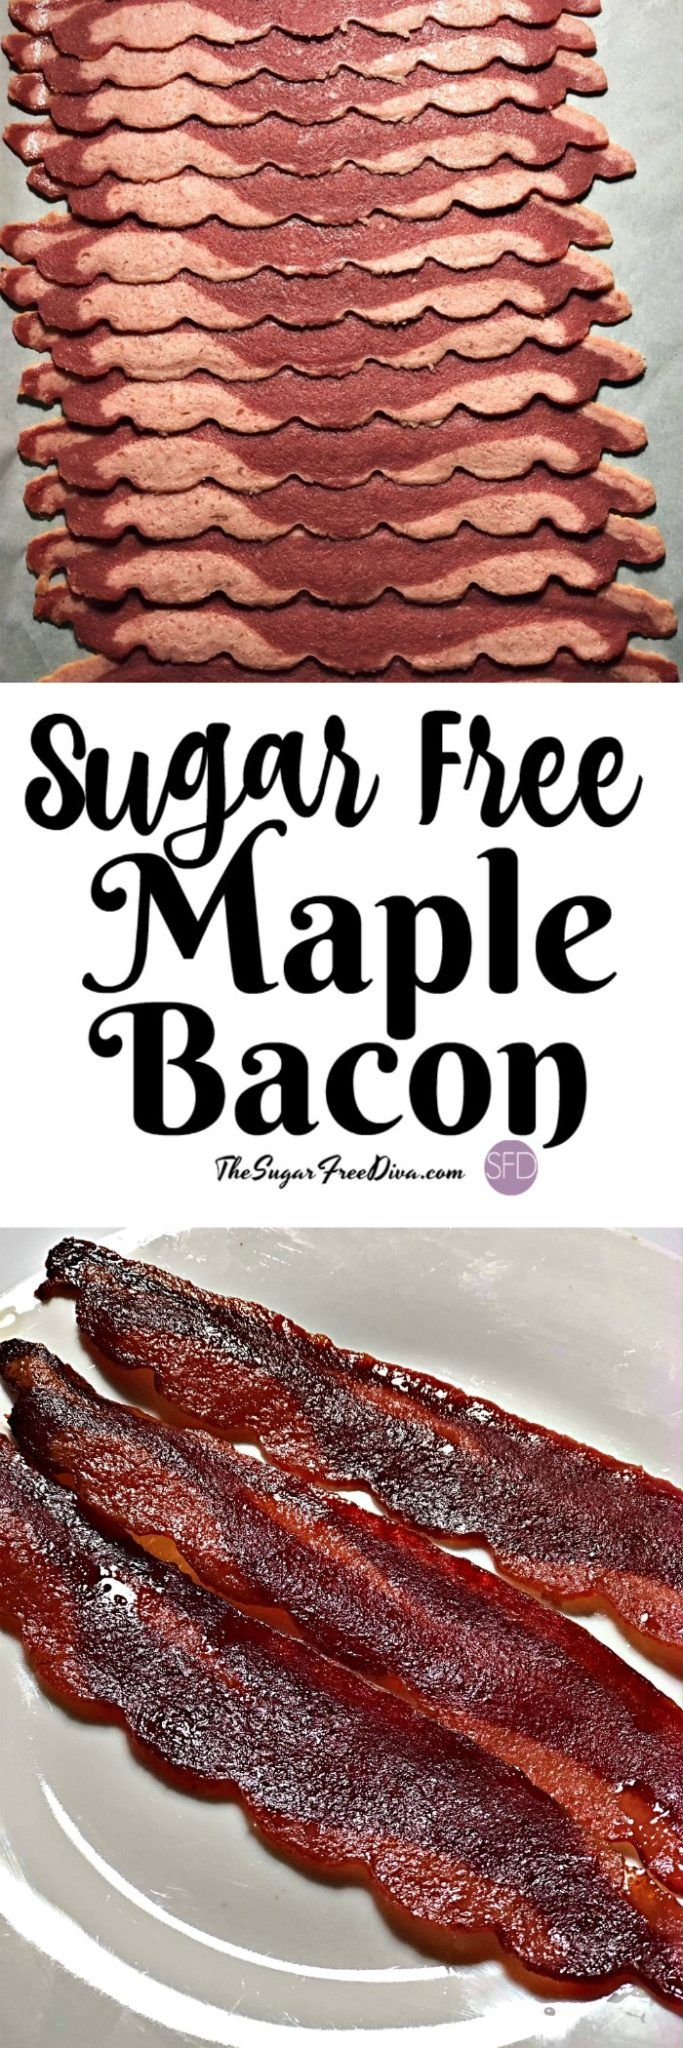 YUM! I like this Sugar Free Maple Roasted Turkey Bacon idea! #sugarfree #lowcarb #bacon #keto #breakfast  Could be the best #bacon #hack ever #video